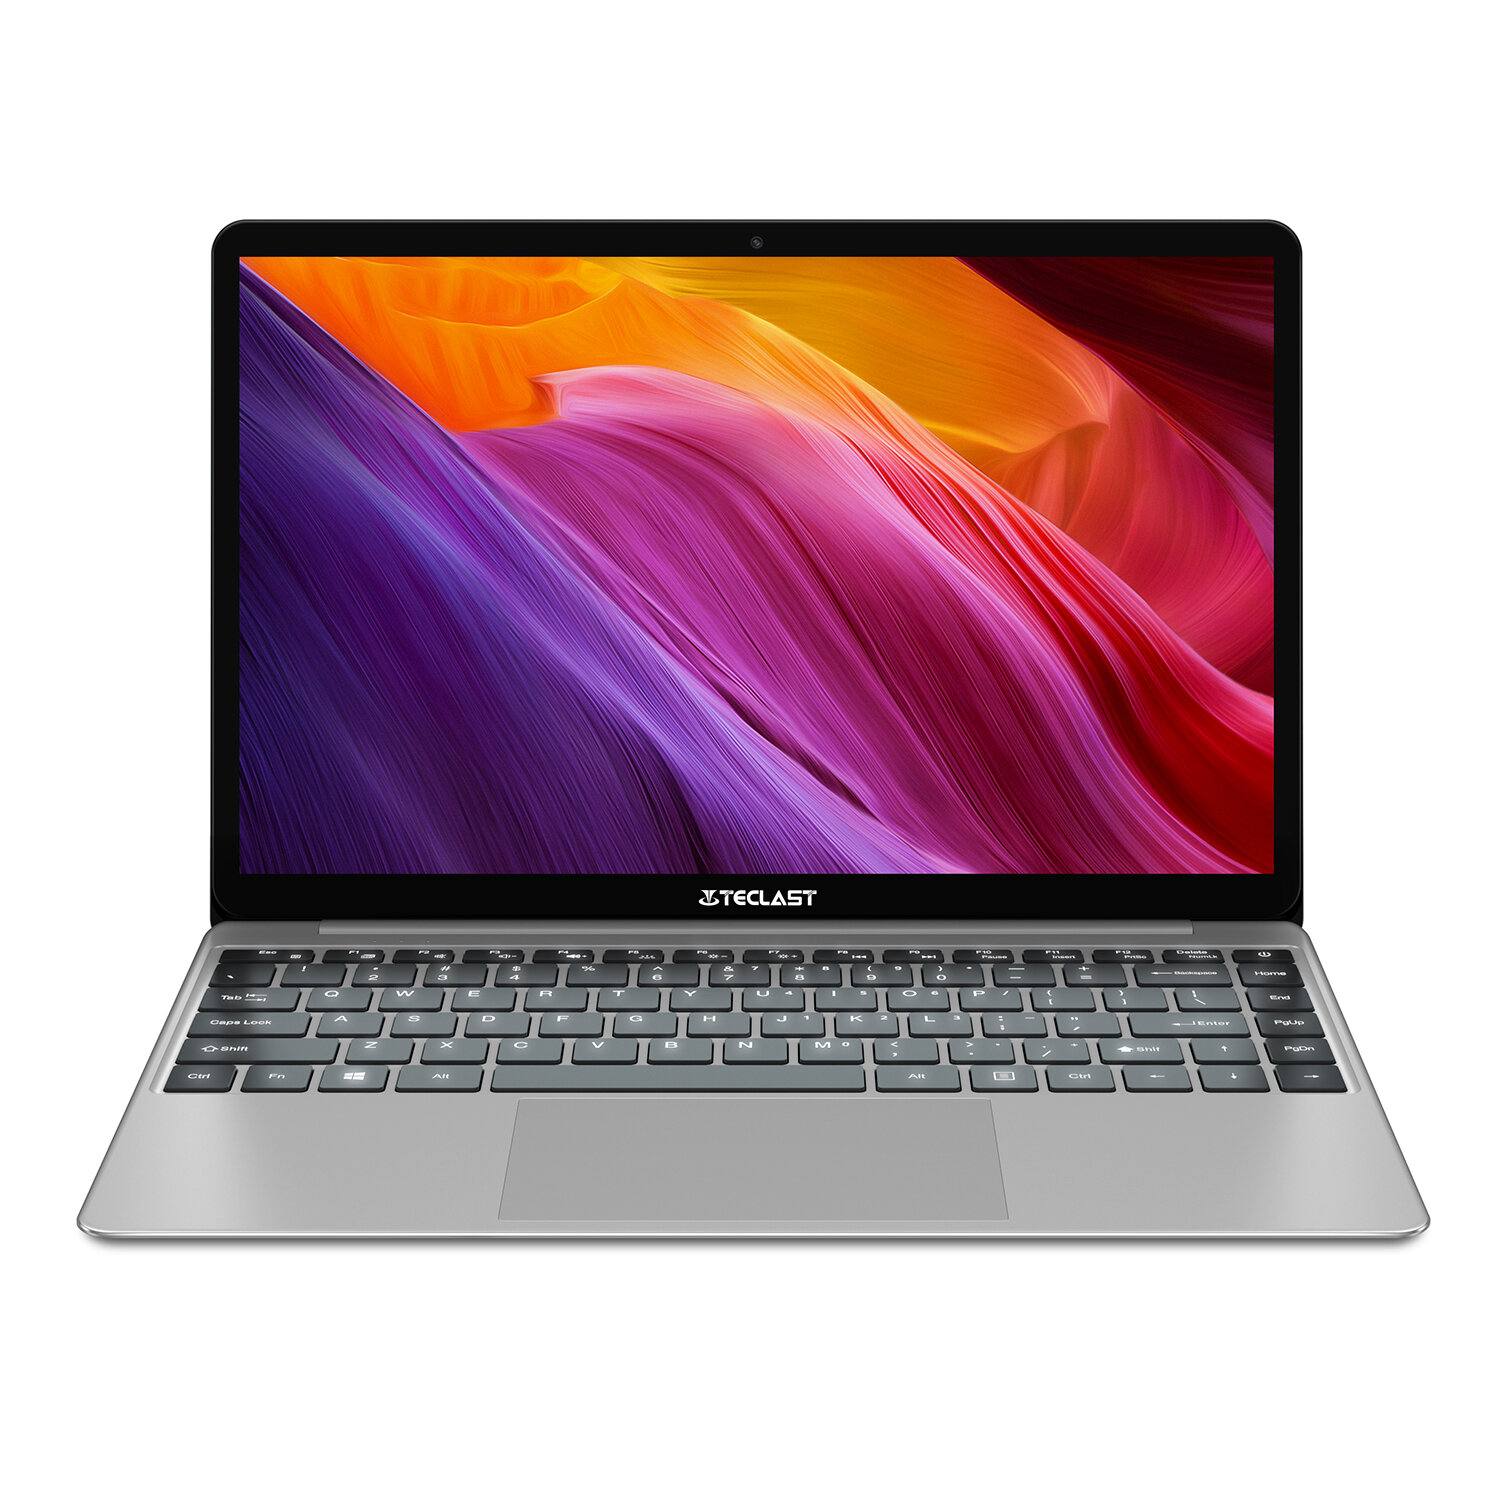 Teclast F7 Plus Laptop 14.1 inch N4100 8GB RAM 256GB  SSD  Intel UHD Graphics 600 Win10 Notebook